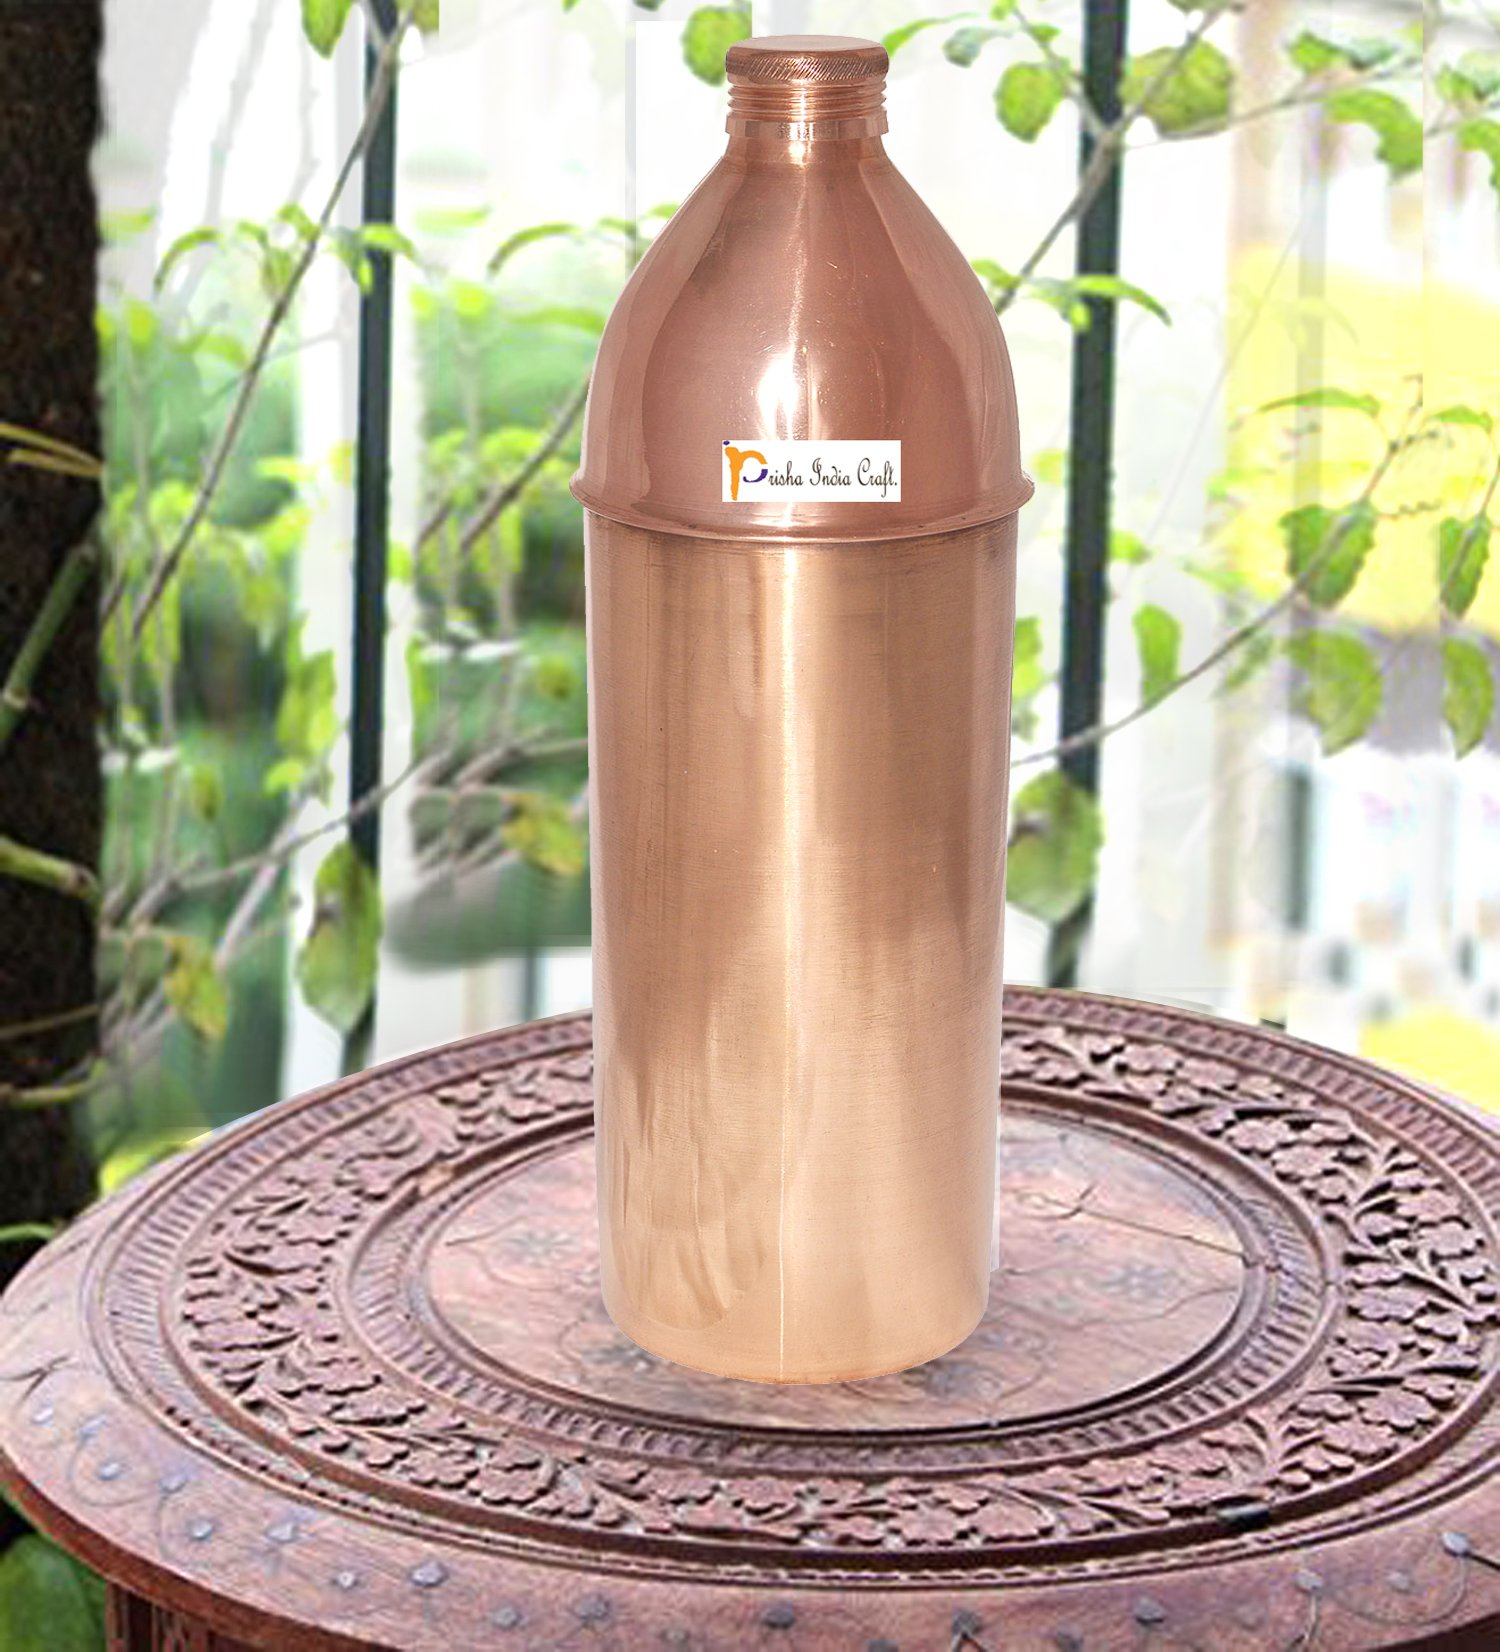 Prisha India Craft Pure Copper Water Bottle/Handmade Copper Vessel for Travel/Insulated Copper Thermos with Ayurvedic Health Benefits, 28.74 Ounce